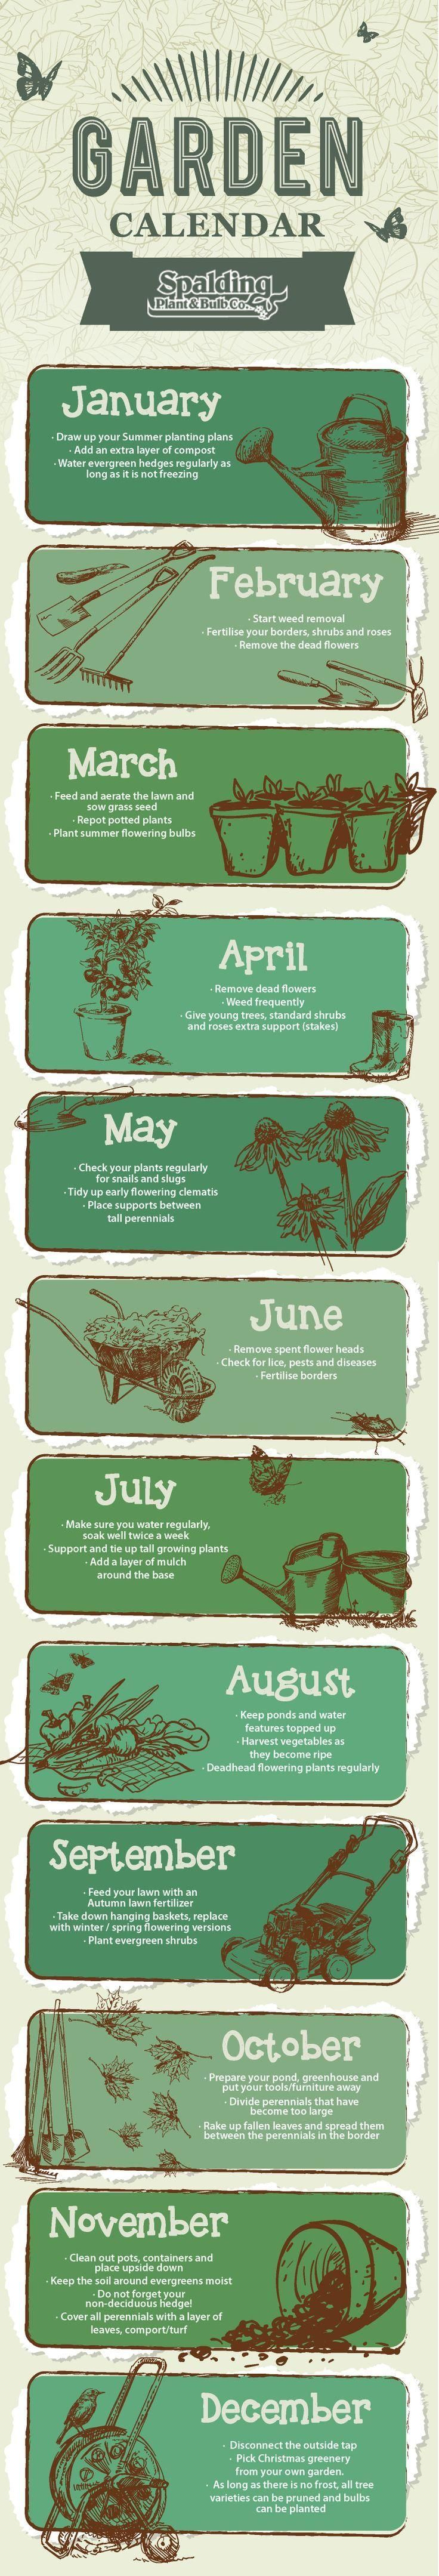 Month by Month garden calendar...need all the help I can get! Mom, does this work for the northeast?